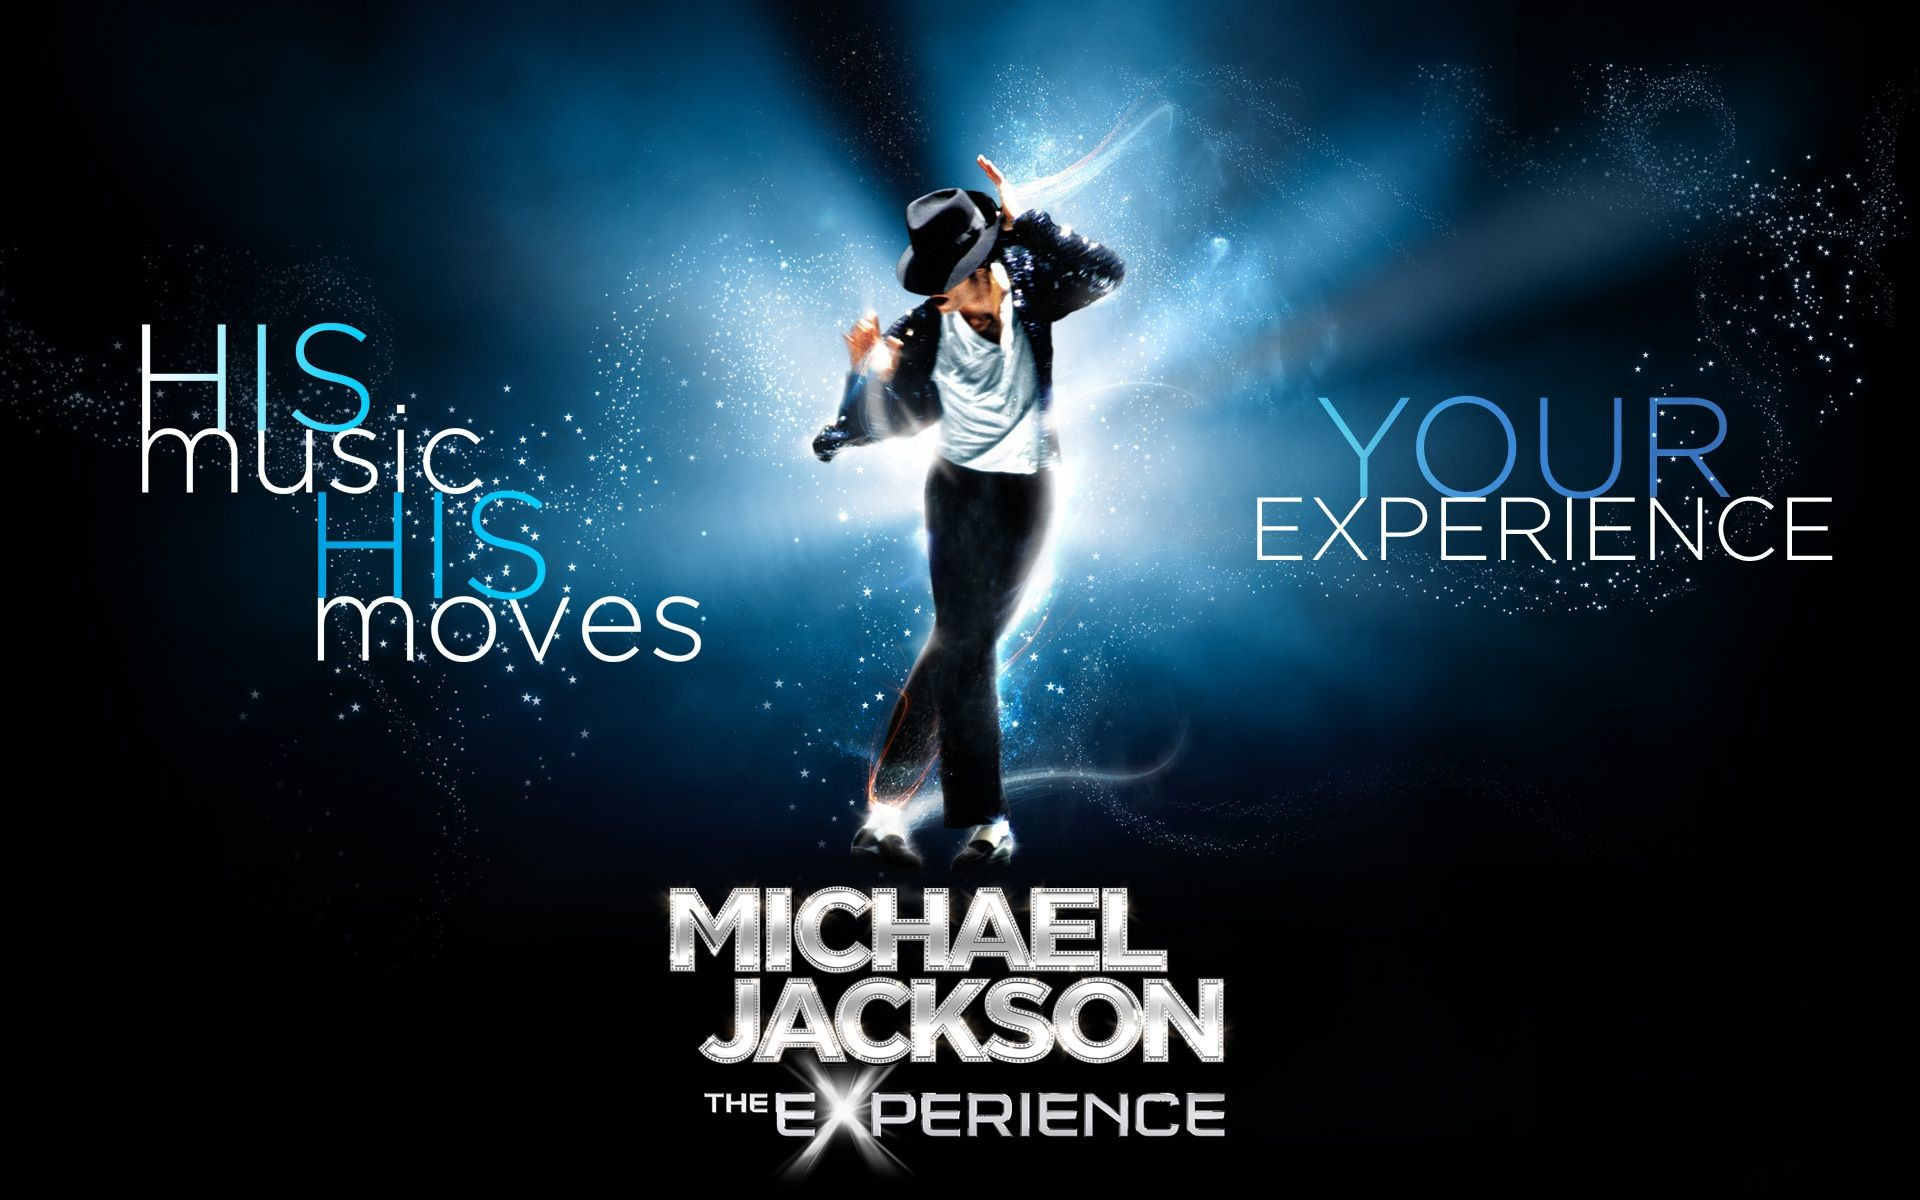 1920x1200 19 Awesome michael jackson dancing wallpaper iphone images